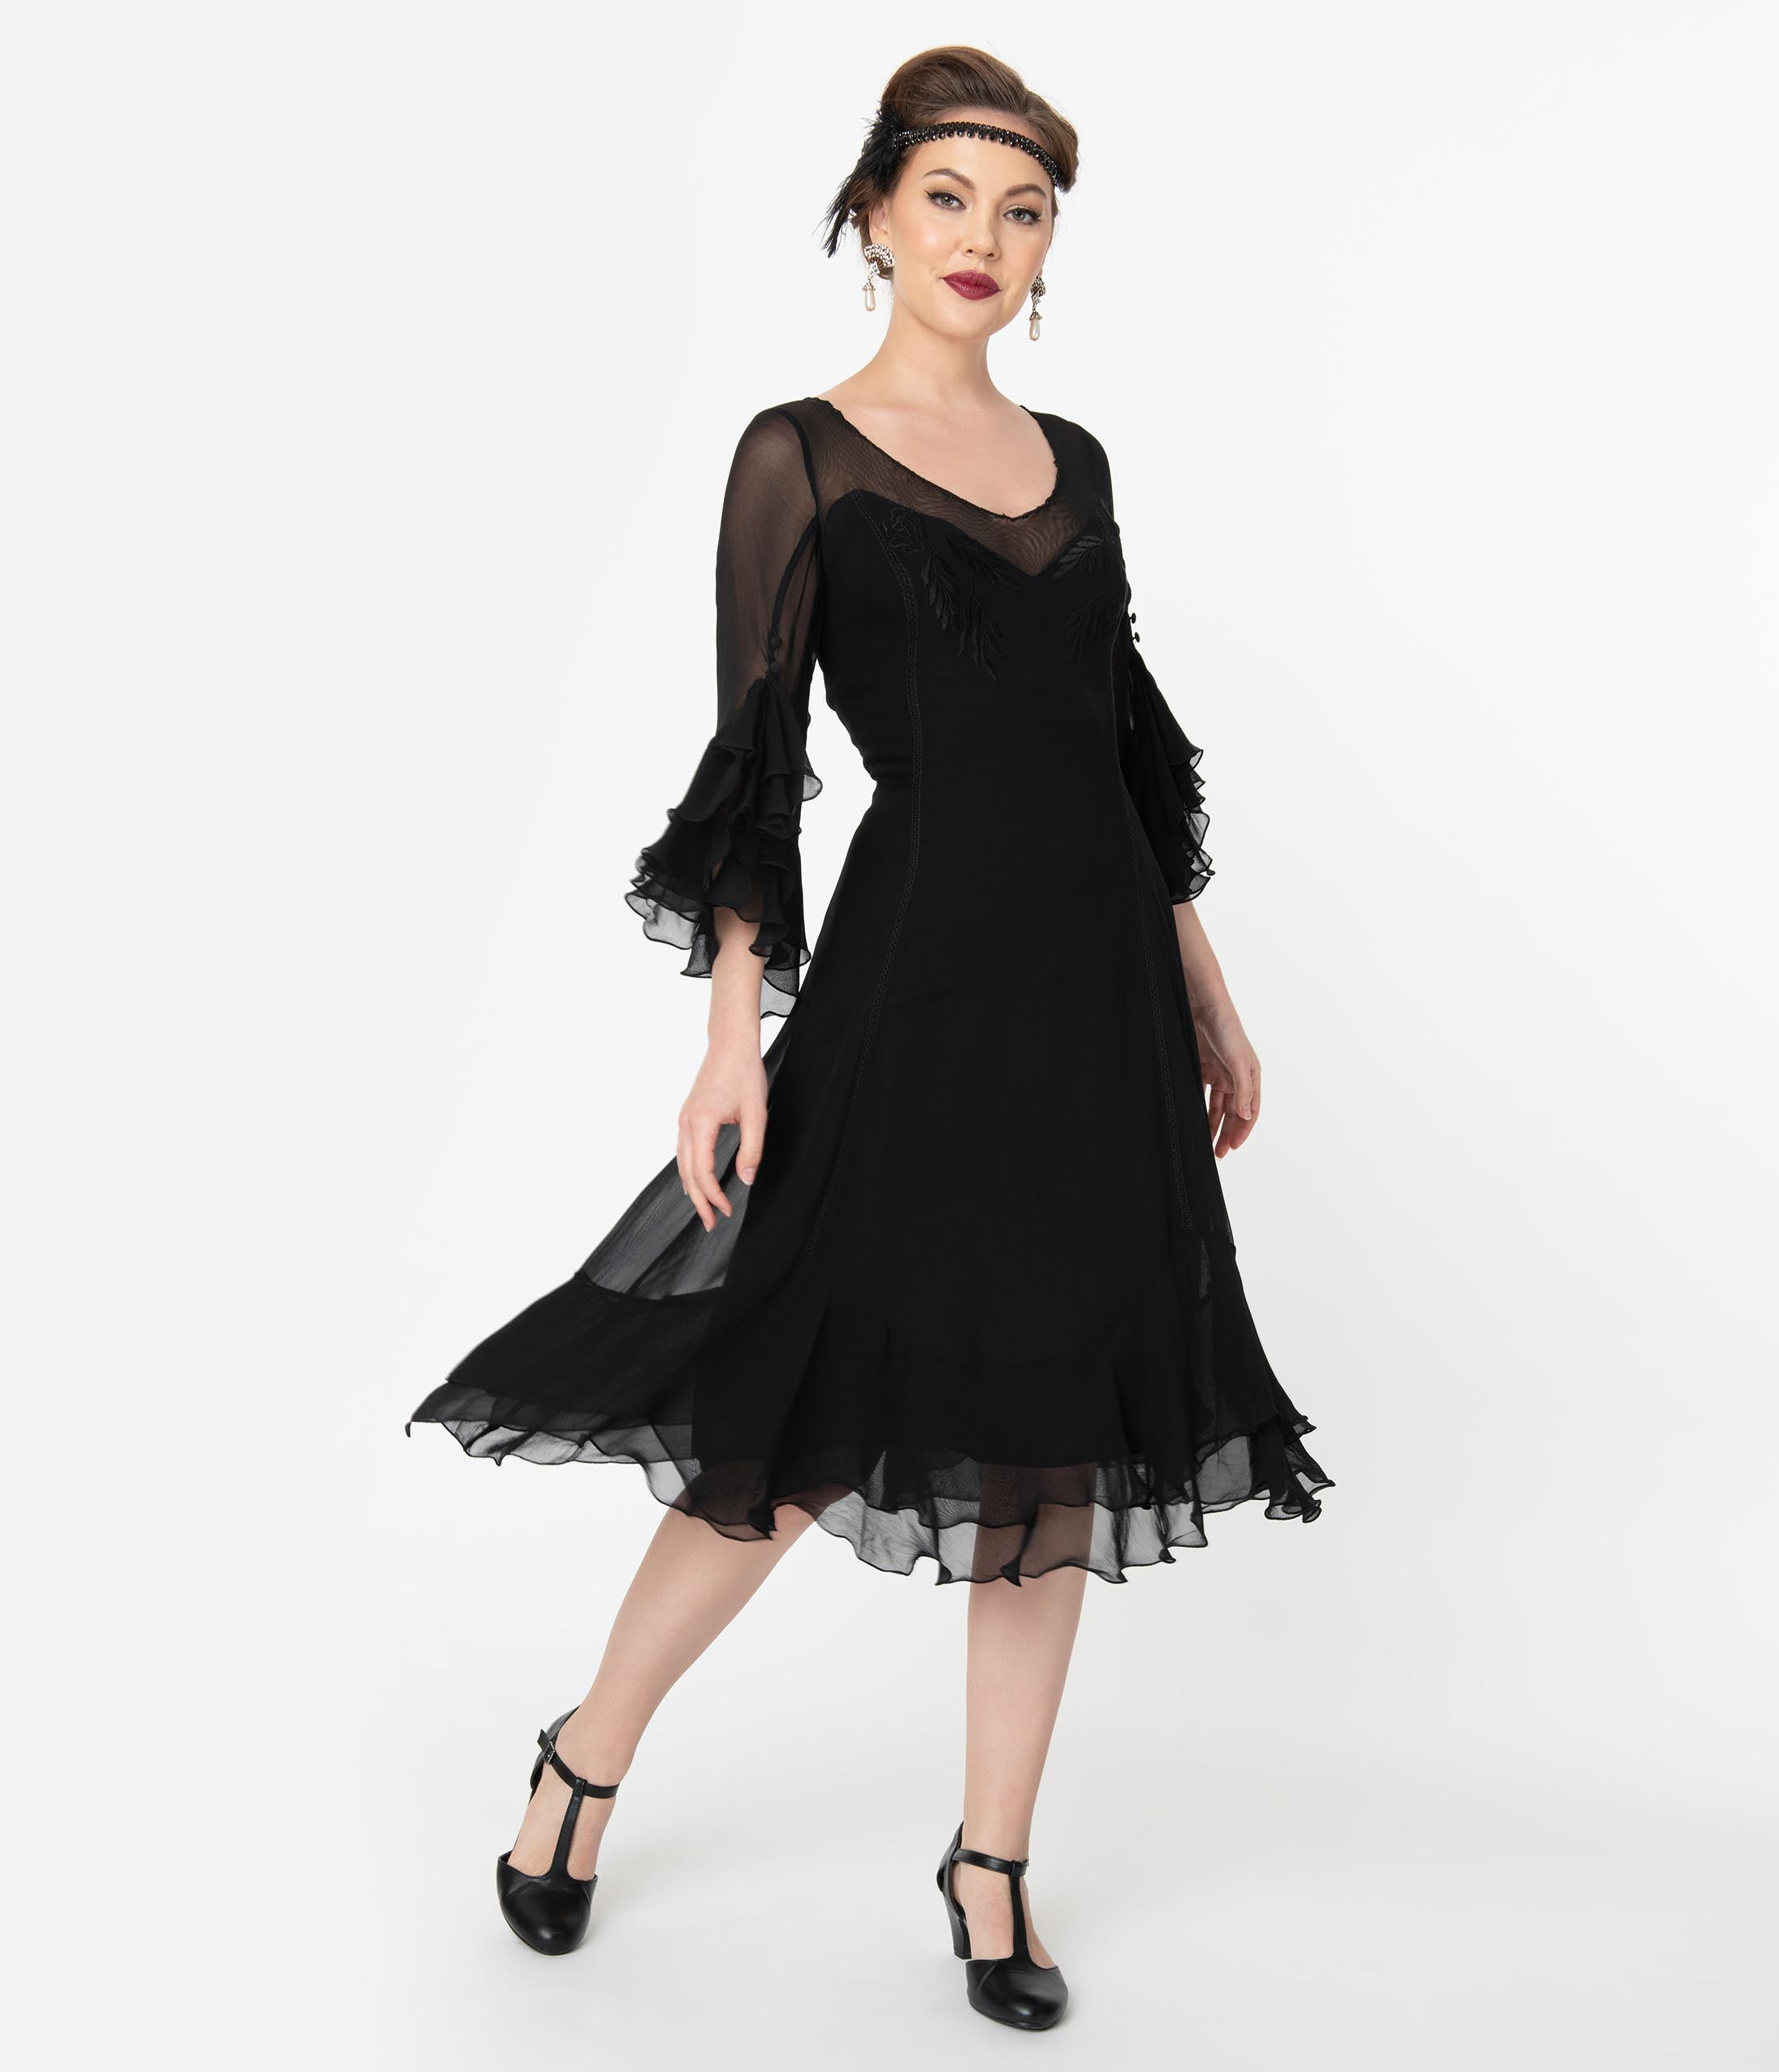 1920s Fashion & Clothing | Roaring 20s Attire 1920S Style Black Mesh Ruffle Leonardo Midi Dress $218.00 AT vintagedancer.com